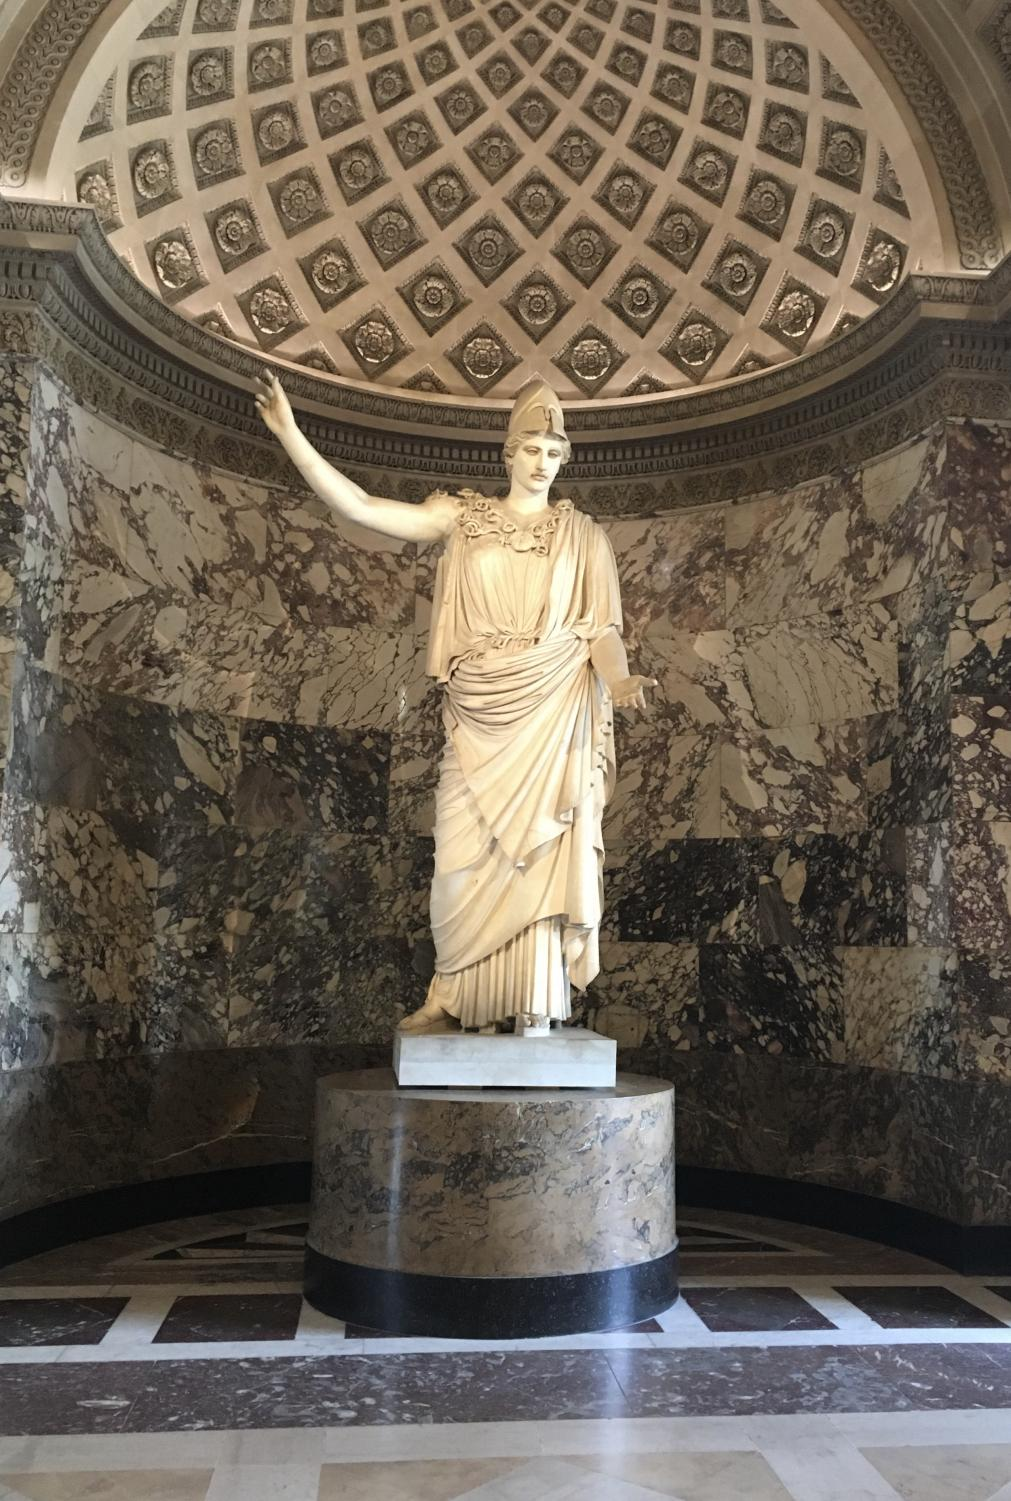 A+sculpture+of+Athena%2C+the+Greek+goddess+of+wisdom%2C+is+set+on+a+pedestal+in+the+Greek+section+of+the+Louvre.+Found+in+Velletri%2C+Rome%2C+this+statue+of+Athena+represents+her+as+a+peaceful+and+strong+leader.